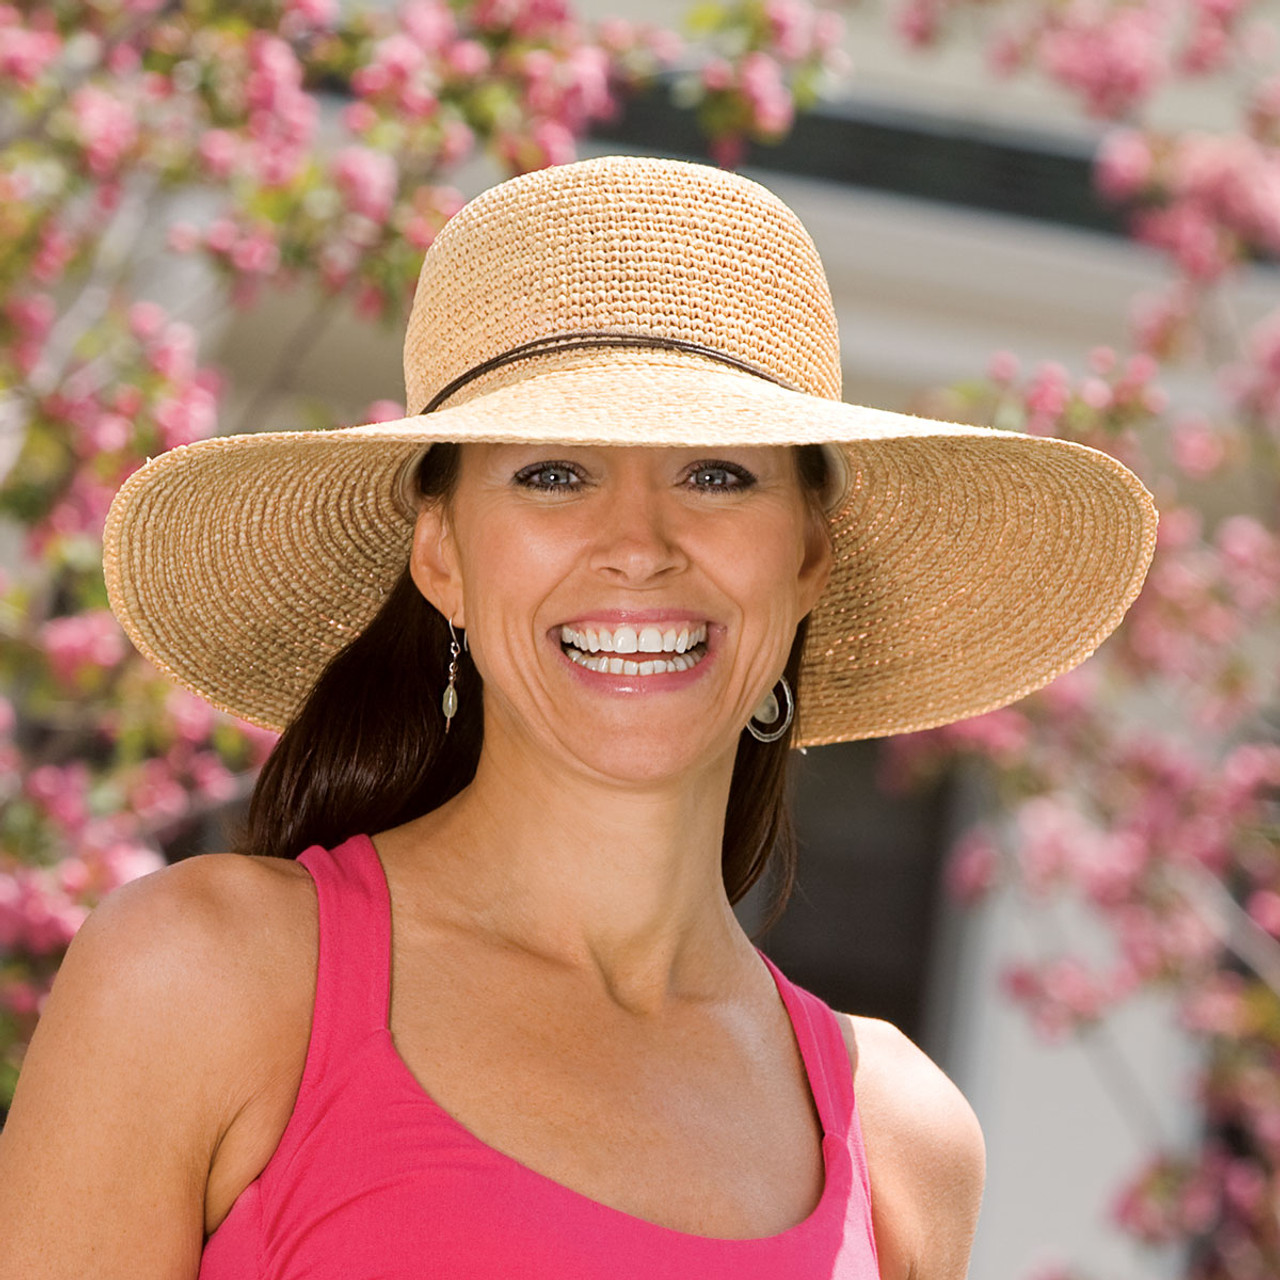 Details about Womens Wallaroo  Napa  Wide Brim UV Sun Hat UPF50+  60acdd8dca2